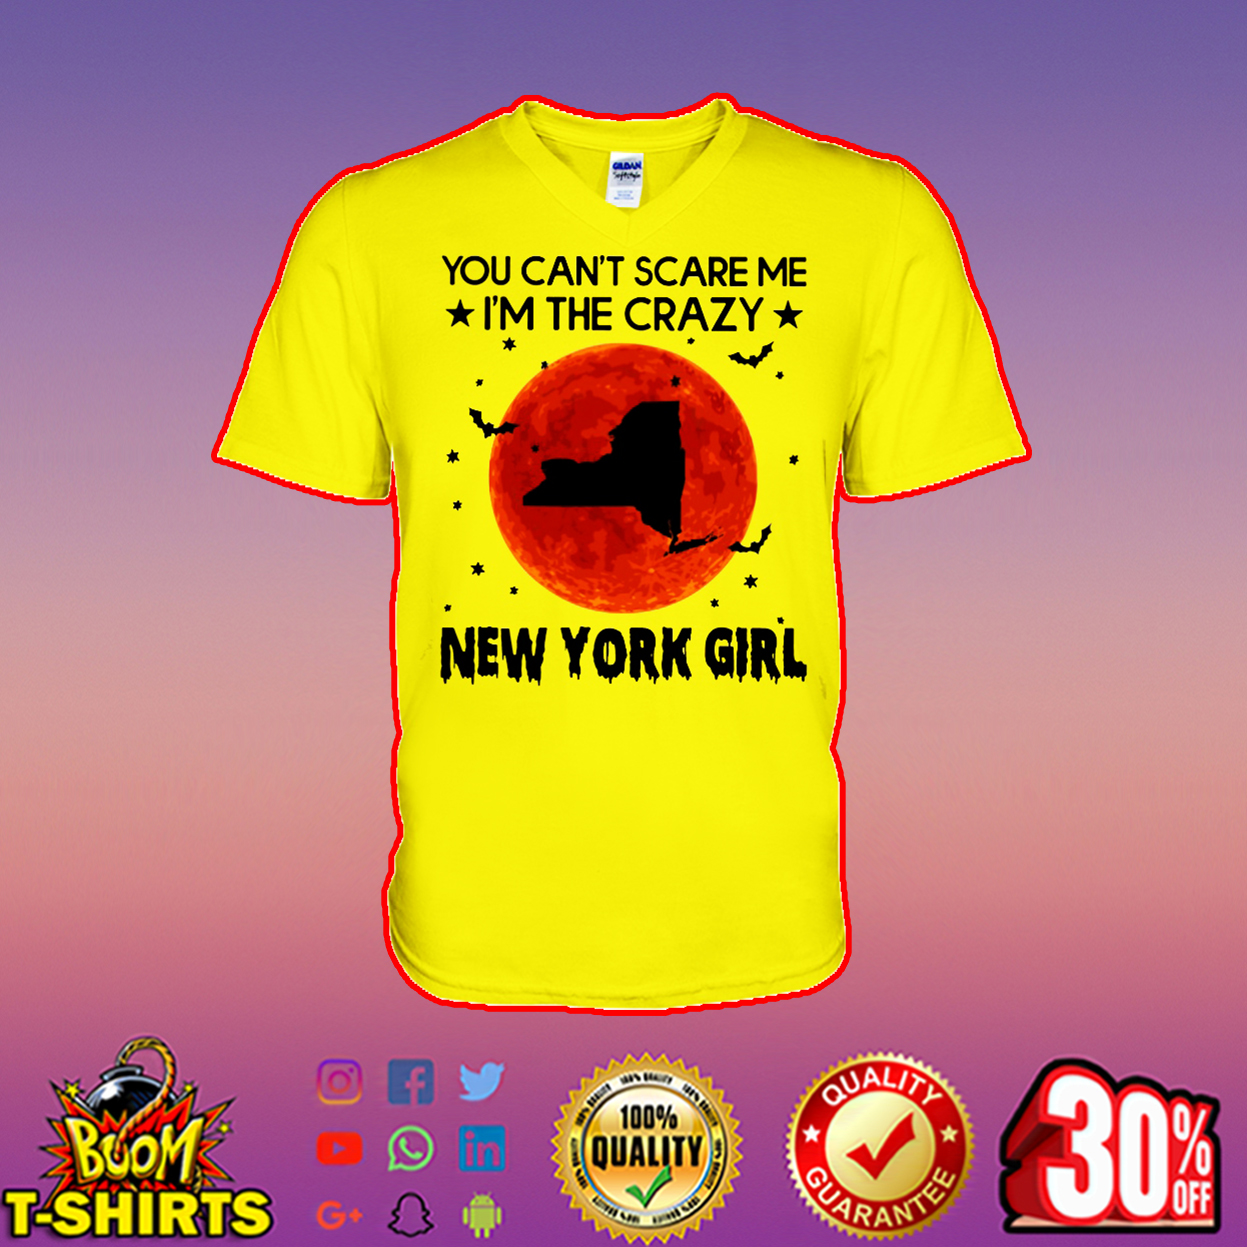 You can't scare me I'm the crazy New York girl v-neck